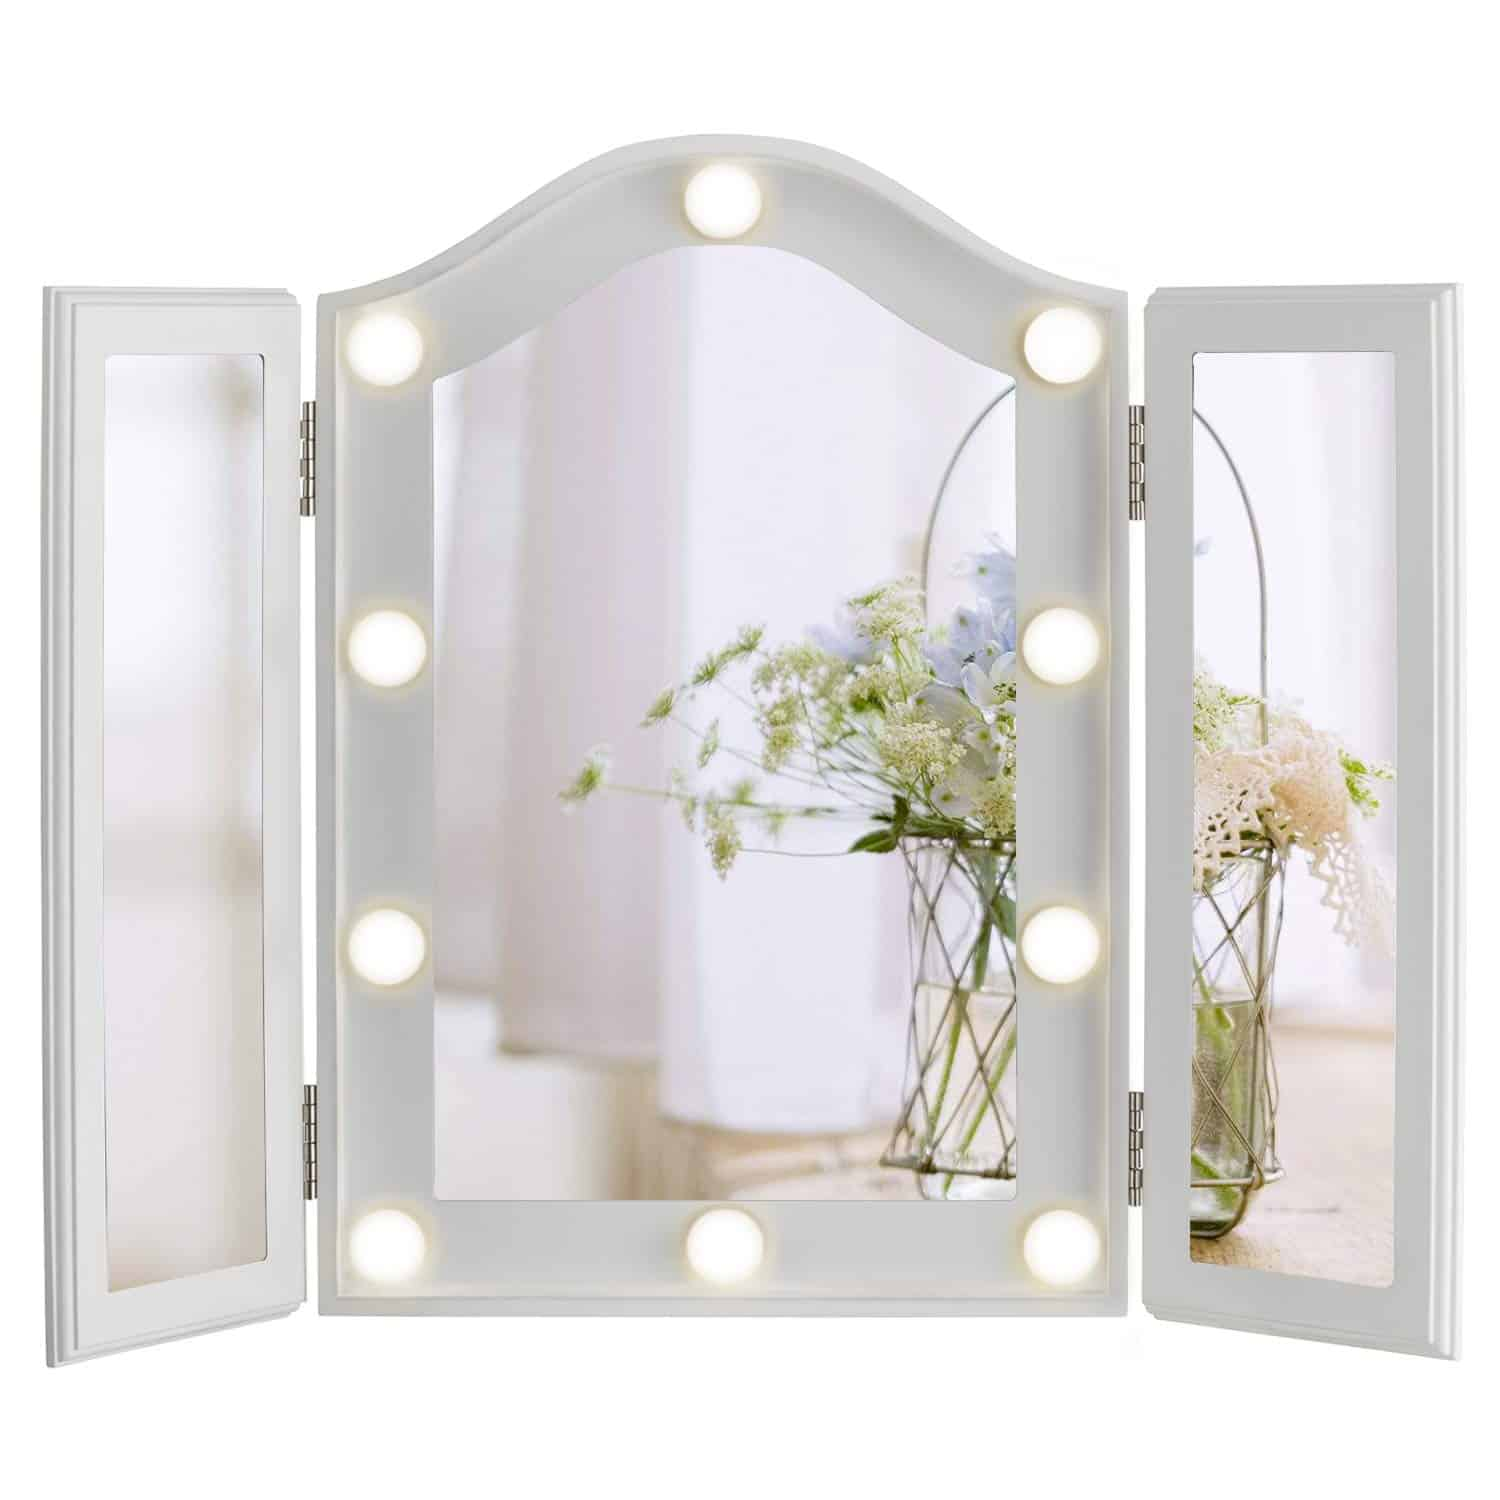 Top 10 Best Led Lighted Vanity Mirrors In 2021 Topreviewproducts